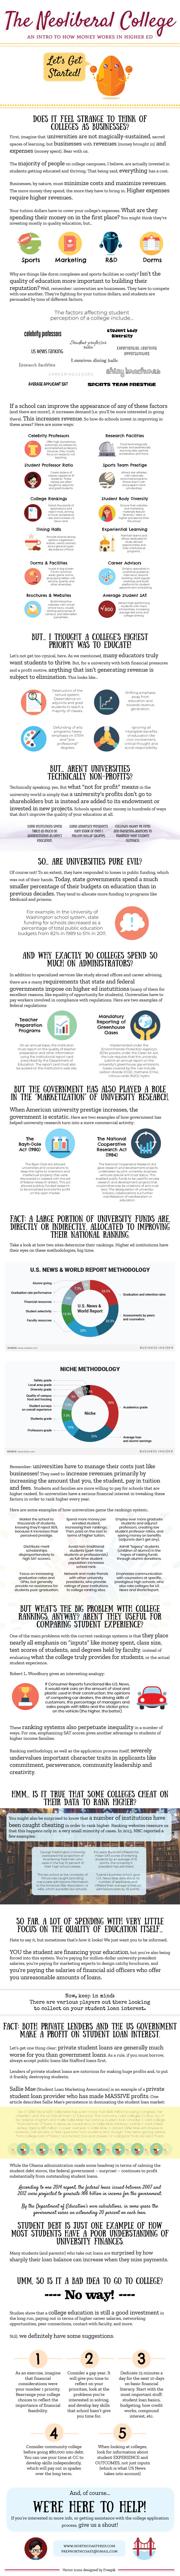 The-Neoliberal-College-1M.jpg